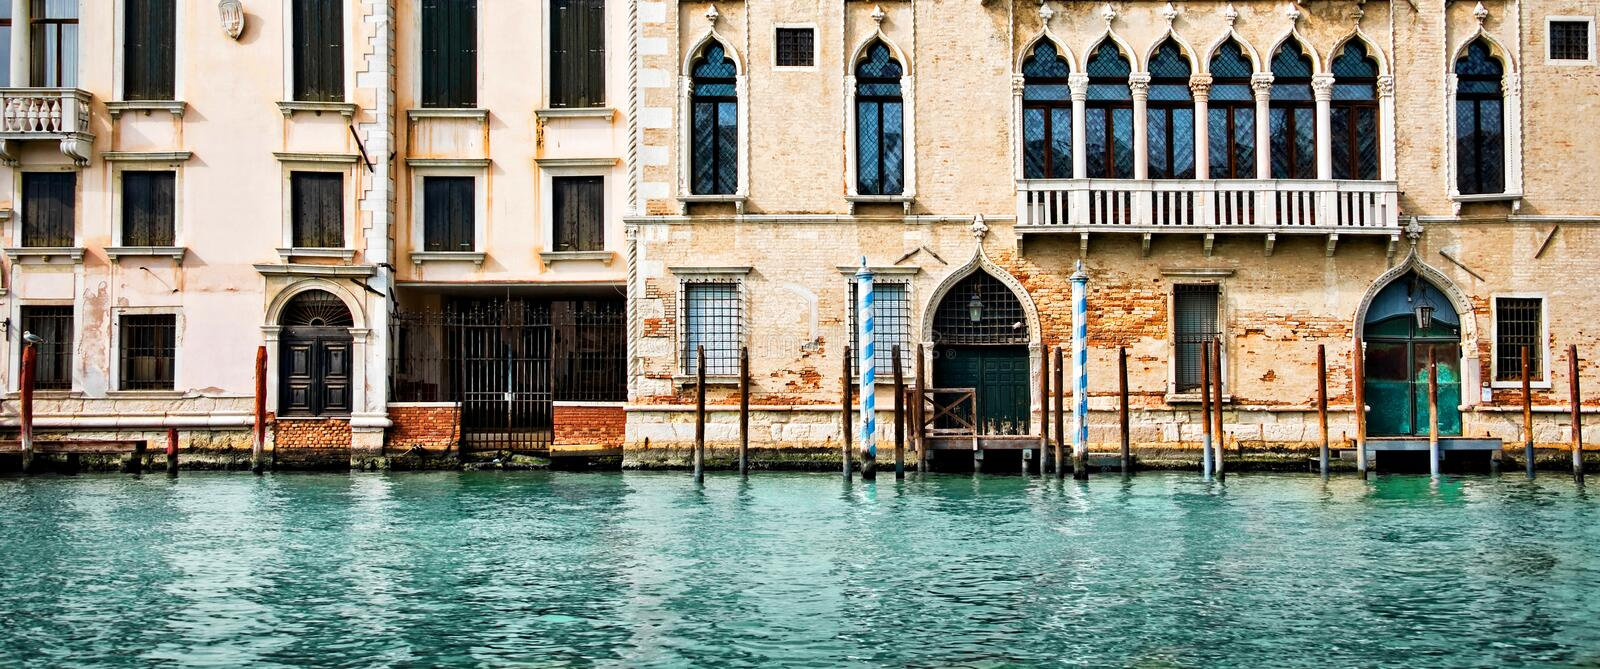 Download Panorama Of Houses And Palaces On The Grand Canal In Venice Italy Stock Image - Image of panorama, banner: 118776683